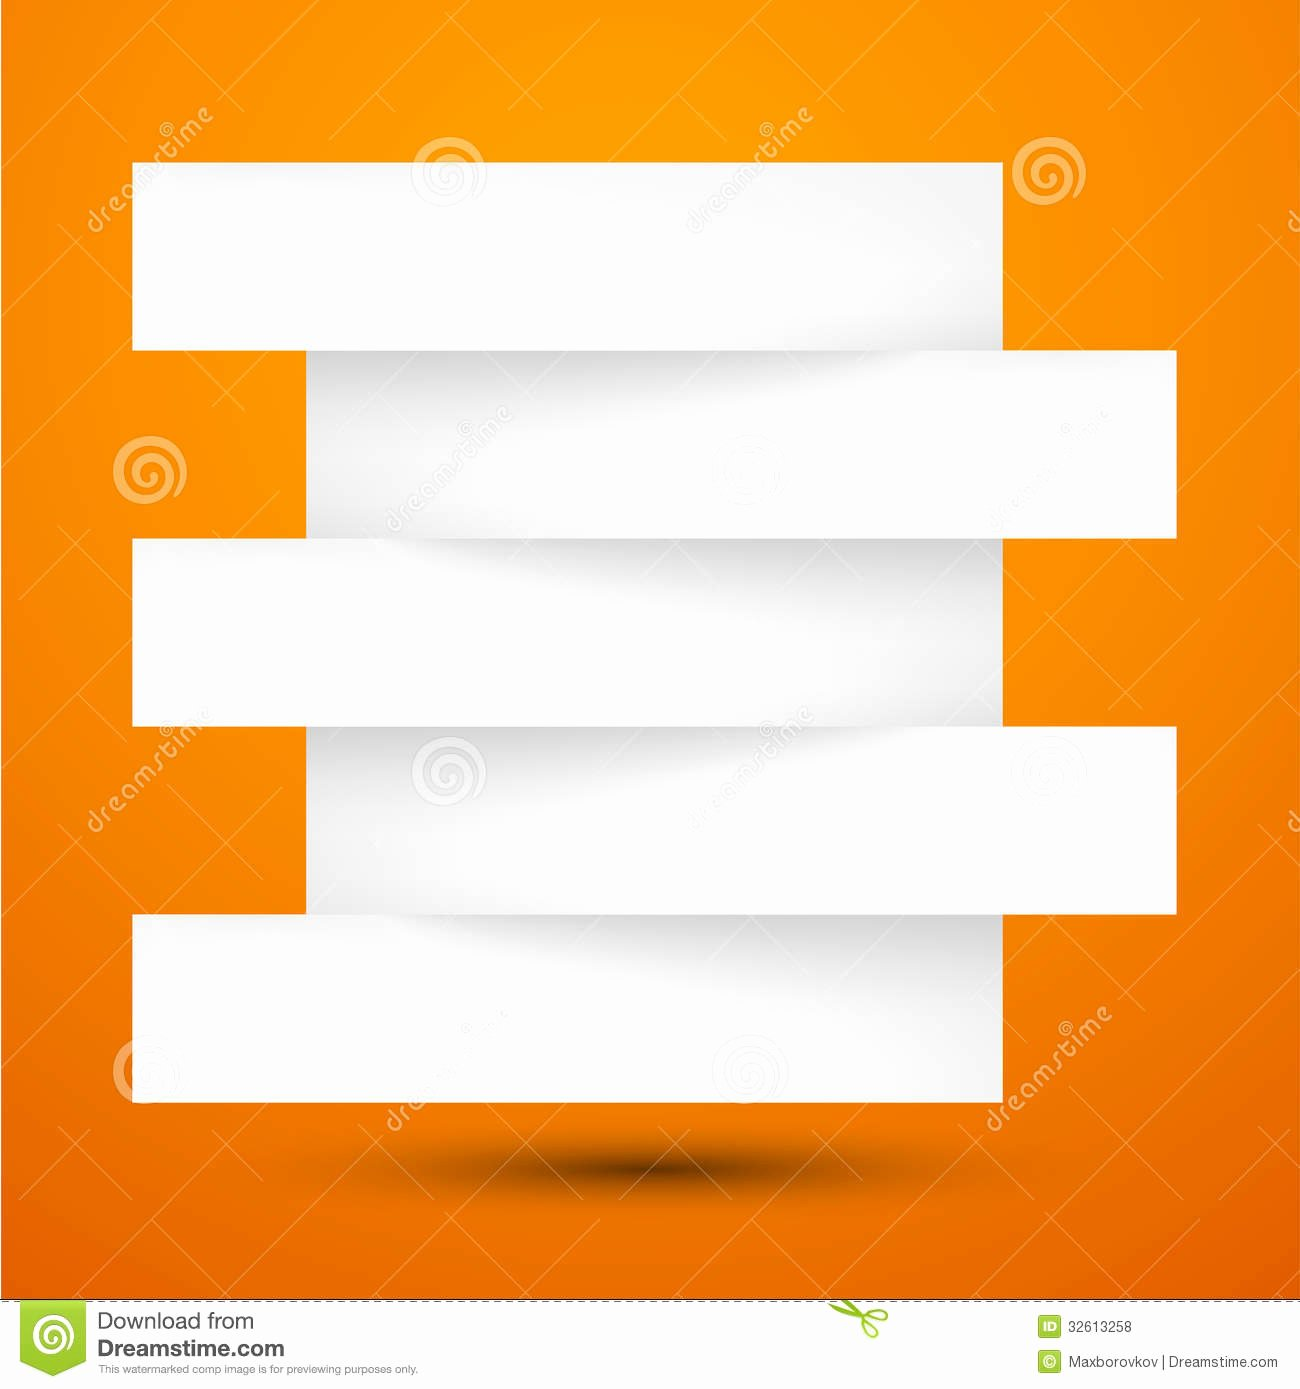 White Paper Design Template Inspirational Infographics White Paper Design Royalty Free Stock S Image